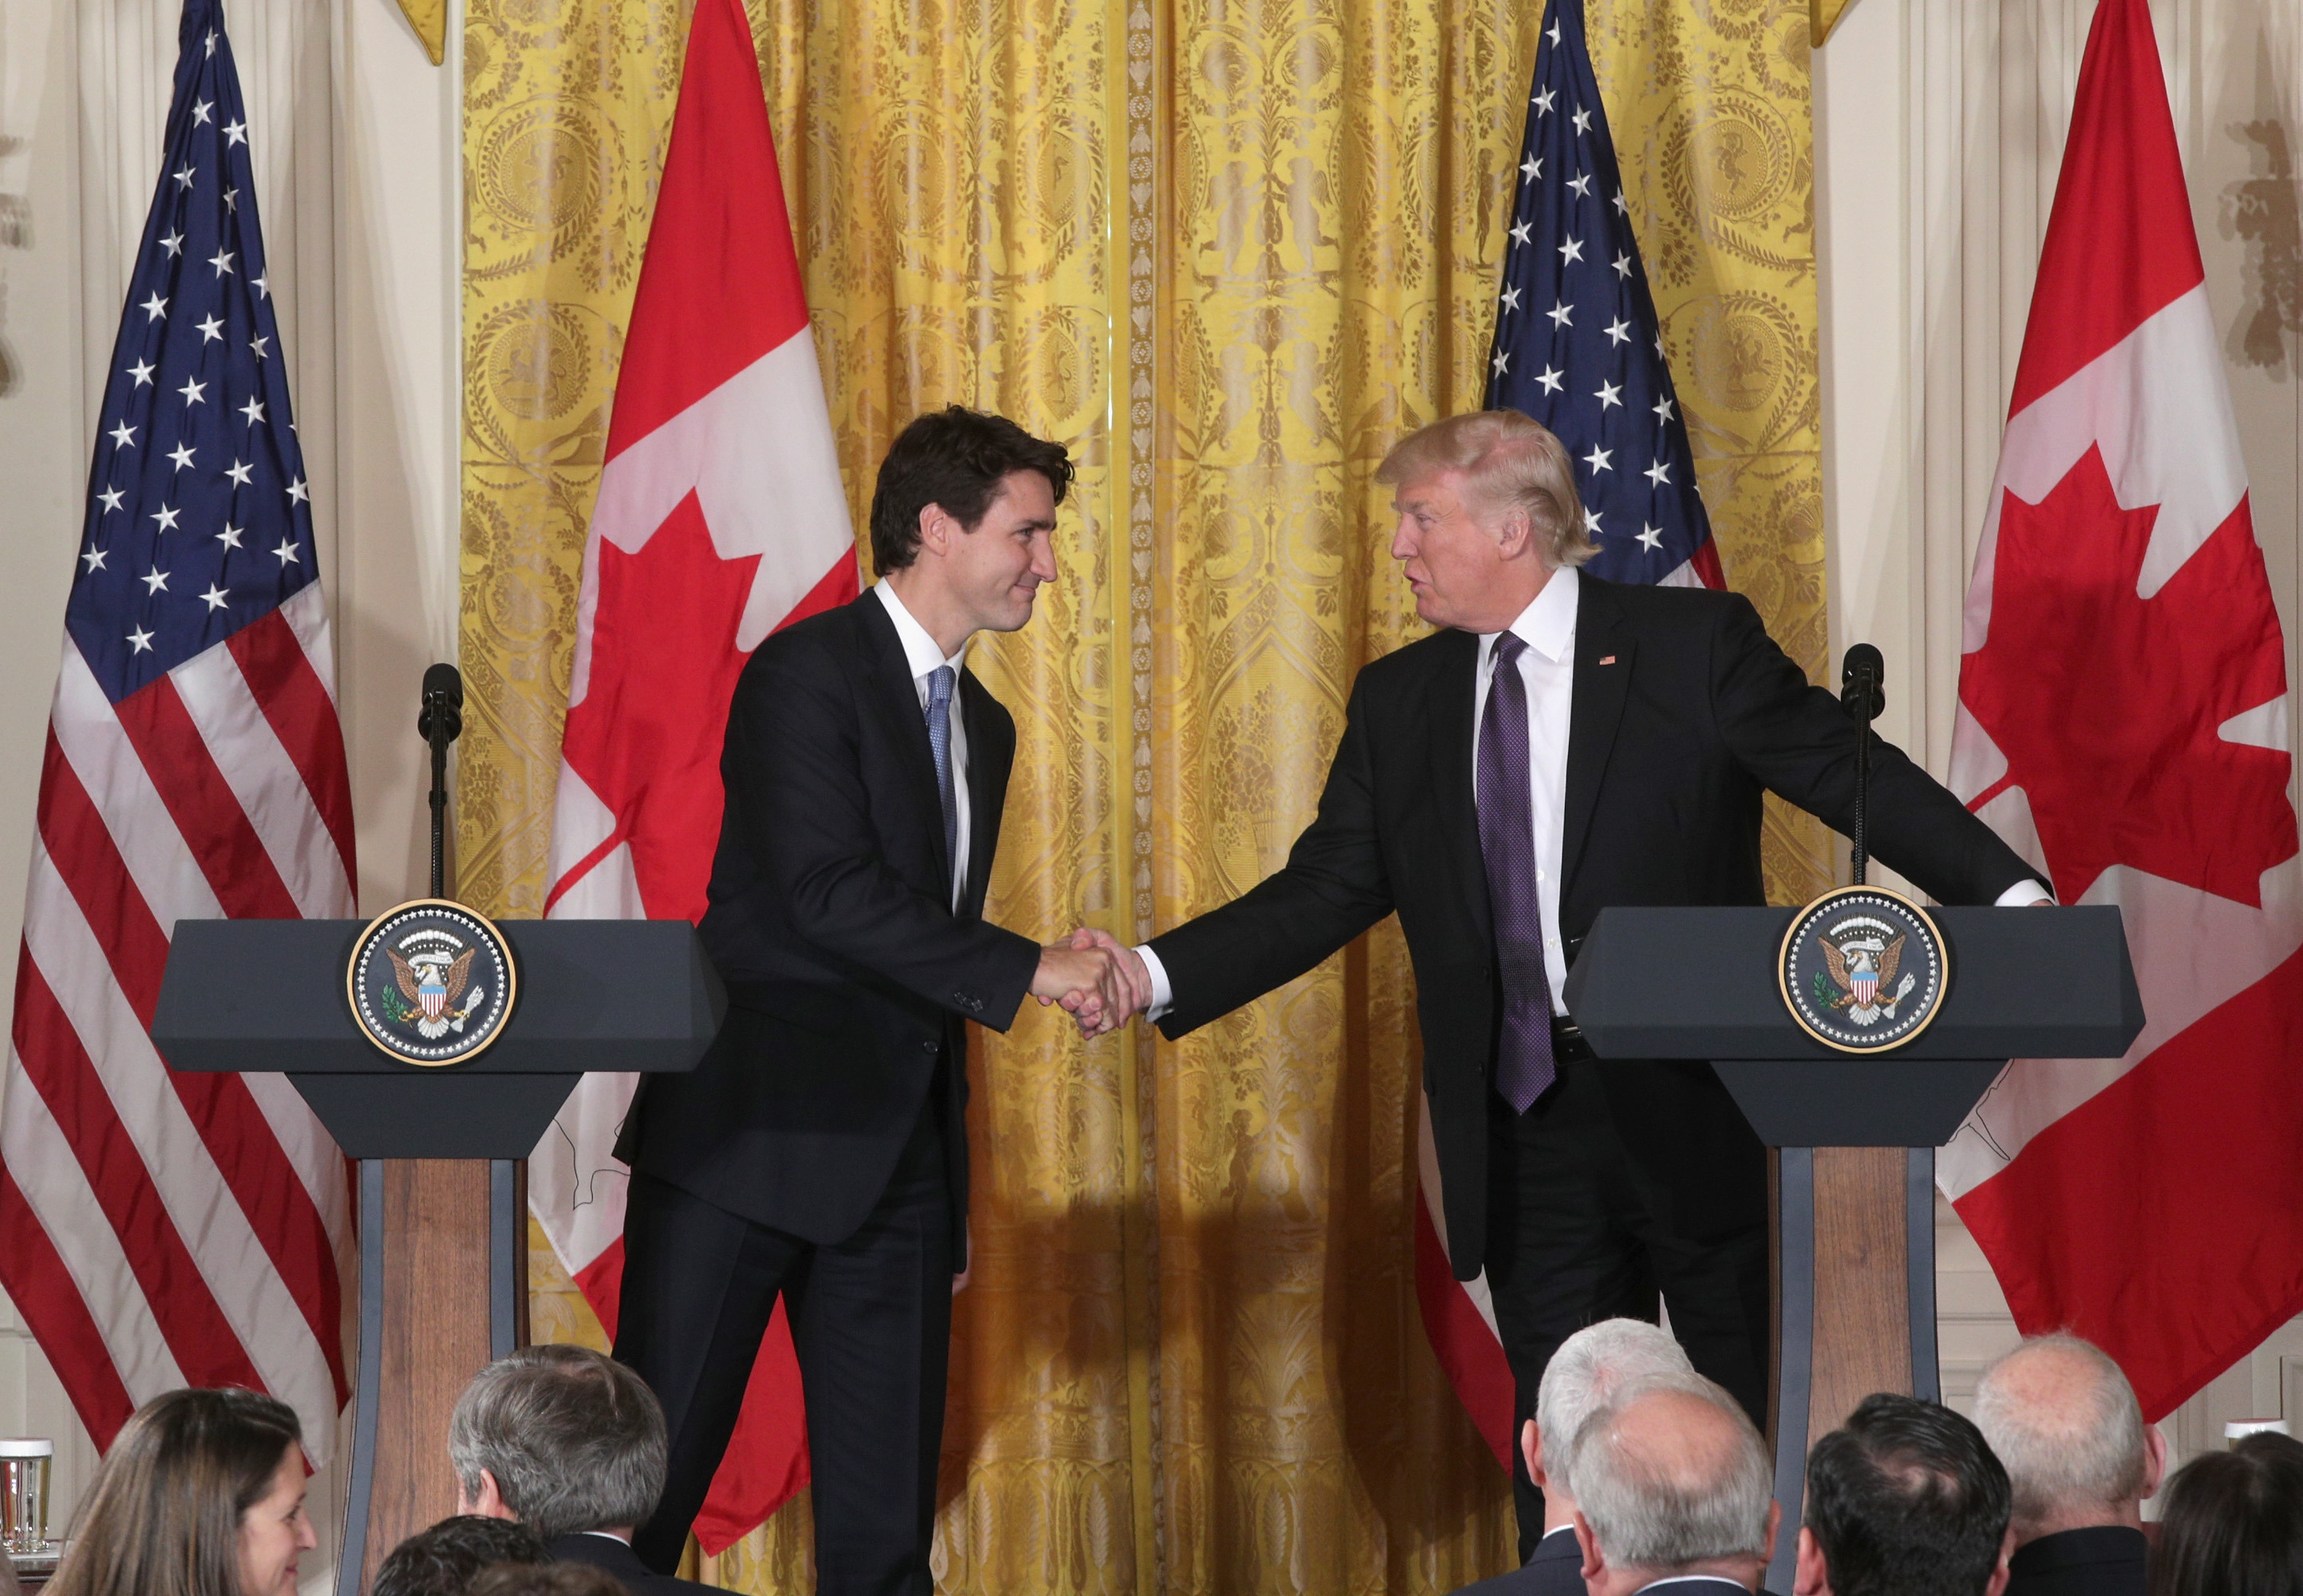 President Donald Trump (R) and Canadian Prime Minister Justin Trudeau participate in a joint news conference in the East Room of the White House on Feb. 13, 2017, in Washington, D.C. (Getty Images)